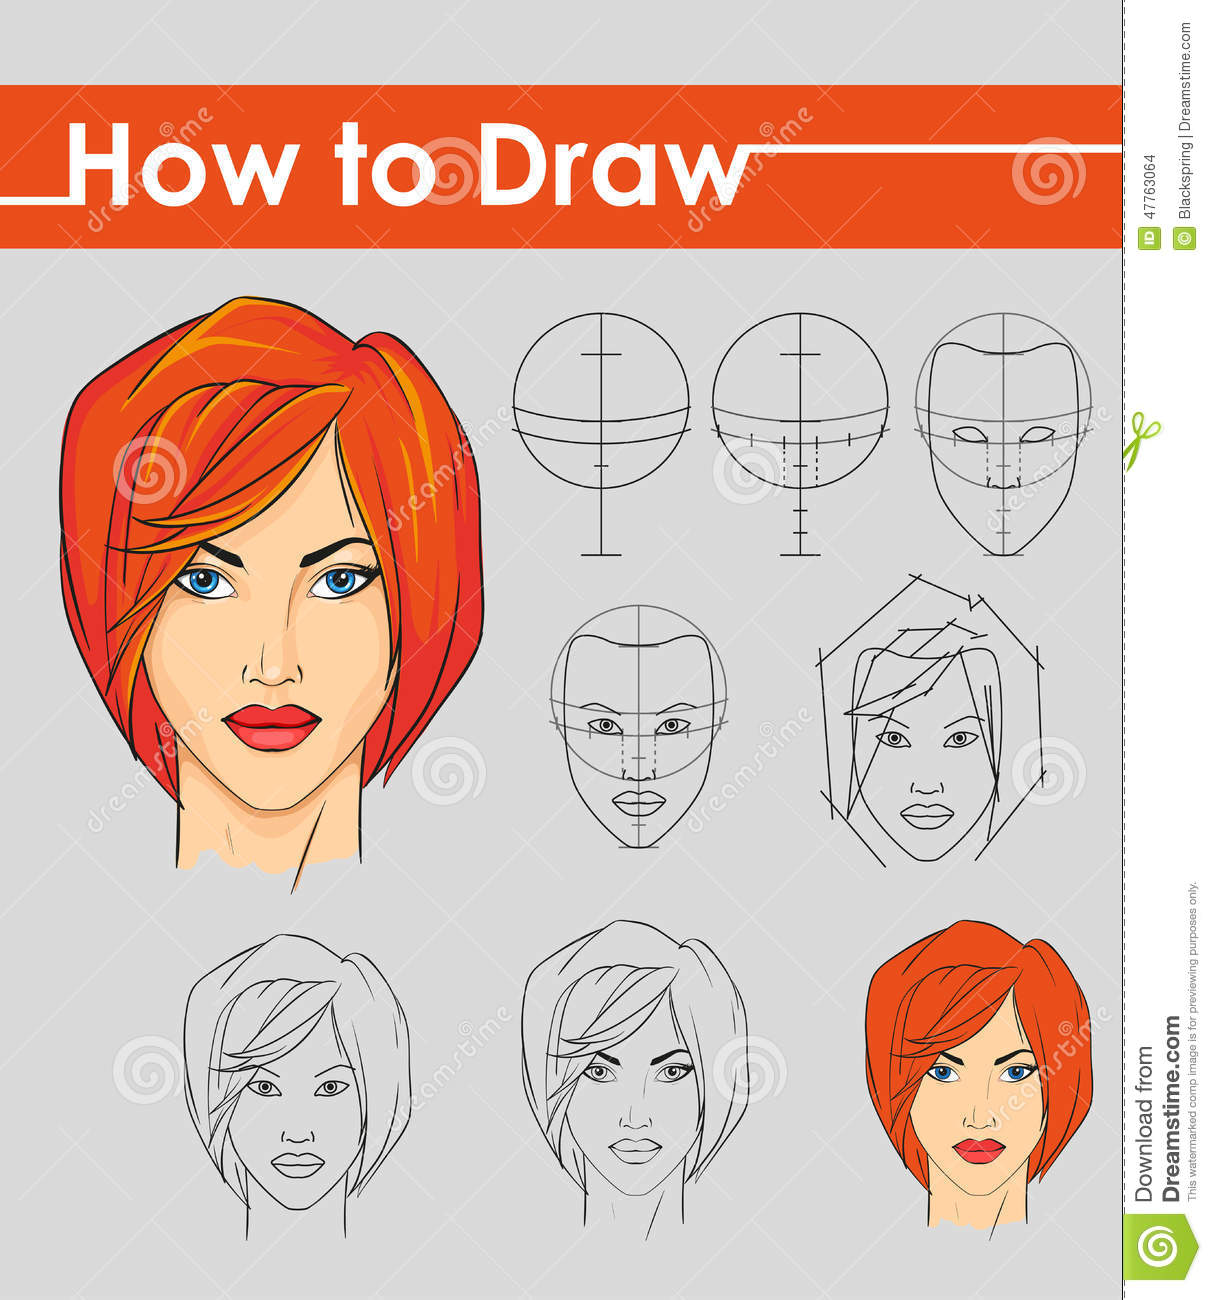 Draw tutorial step by step stock vector illustration for Drawing tutorials step by step